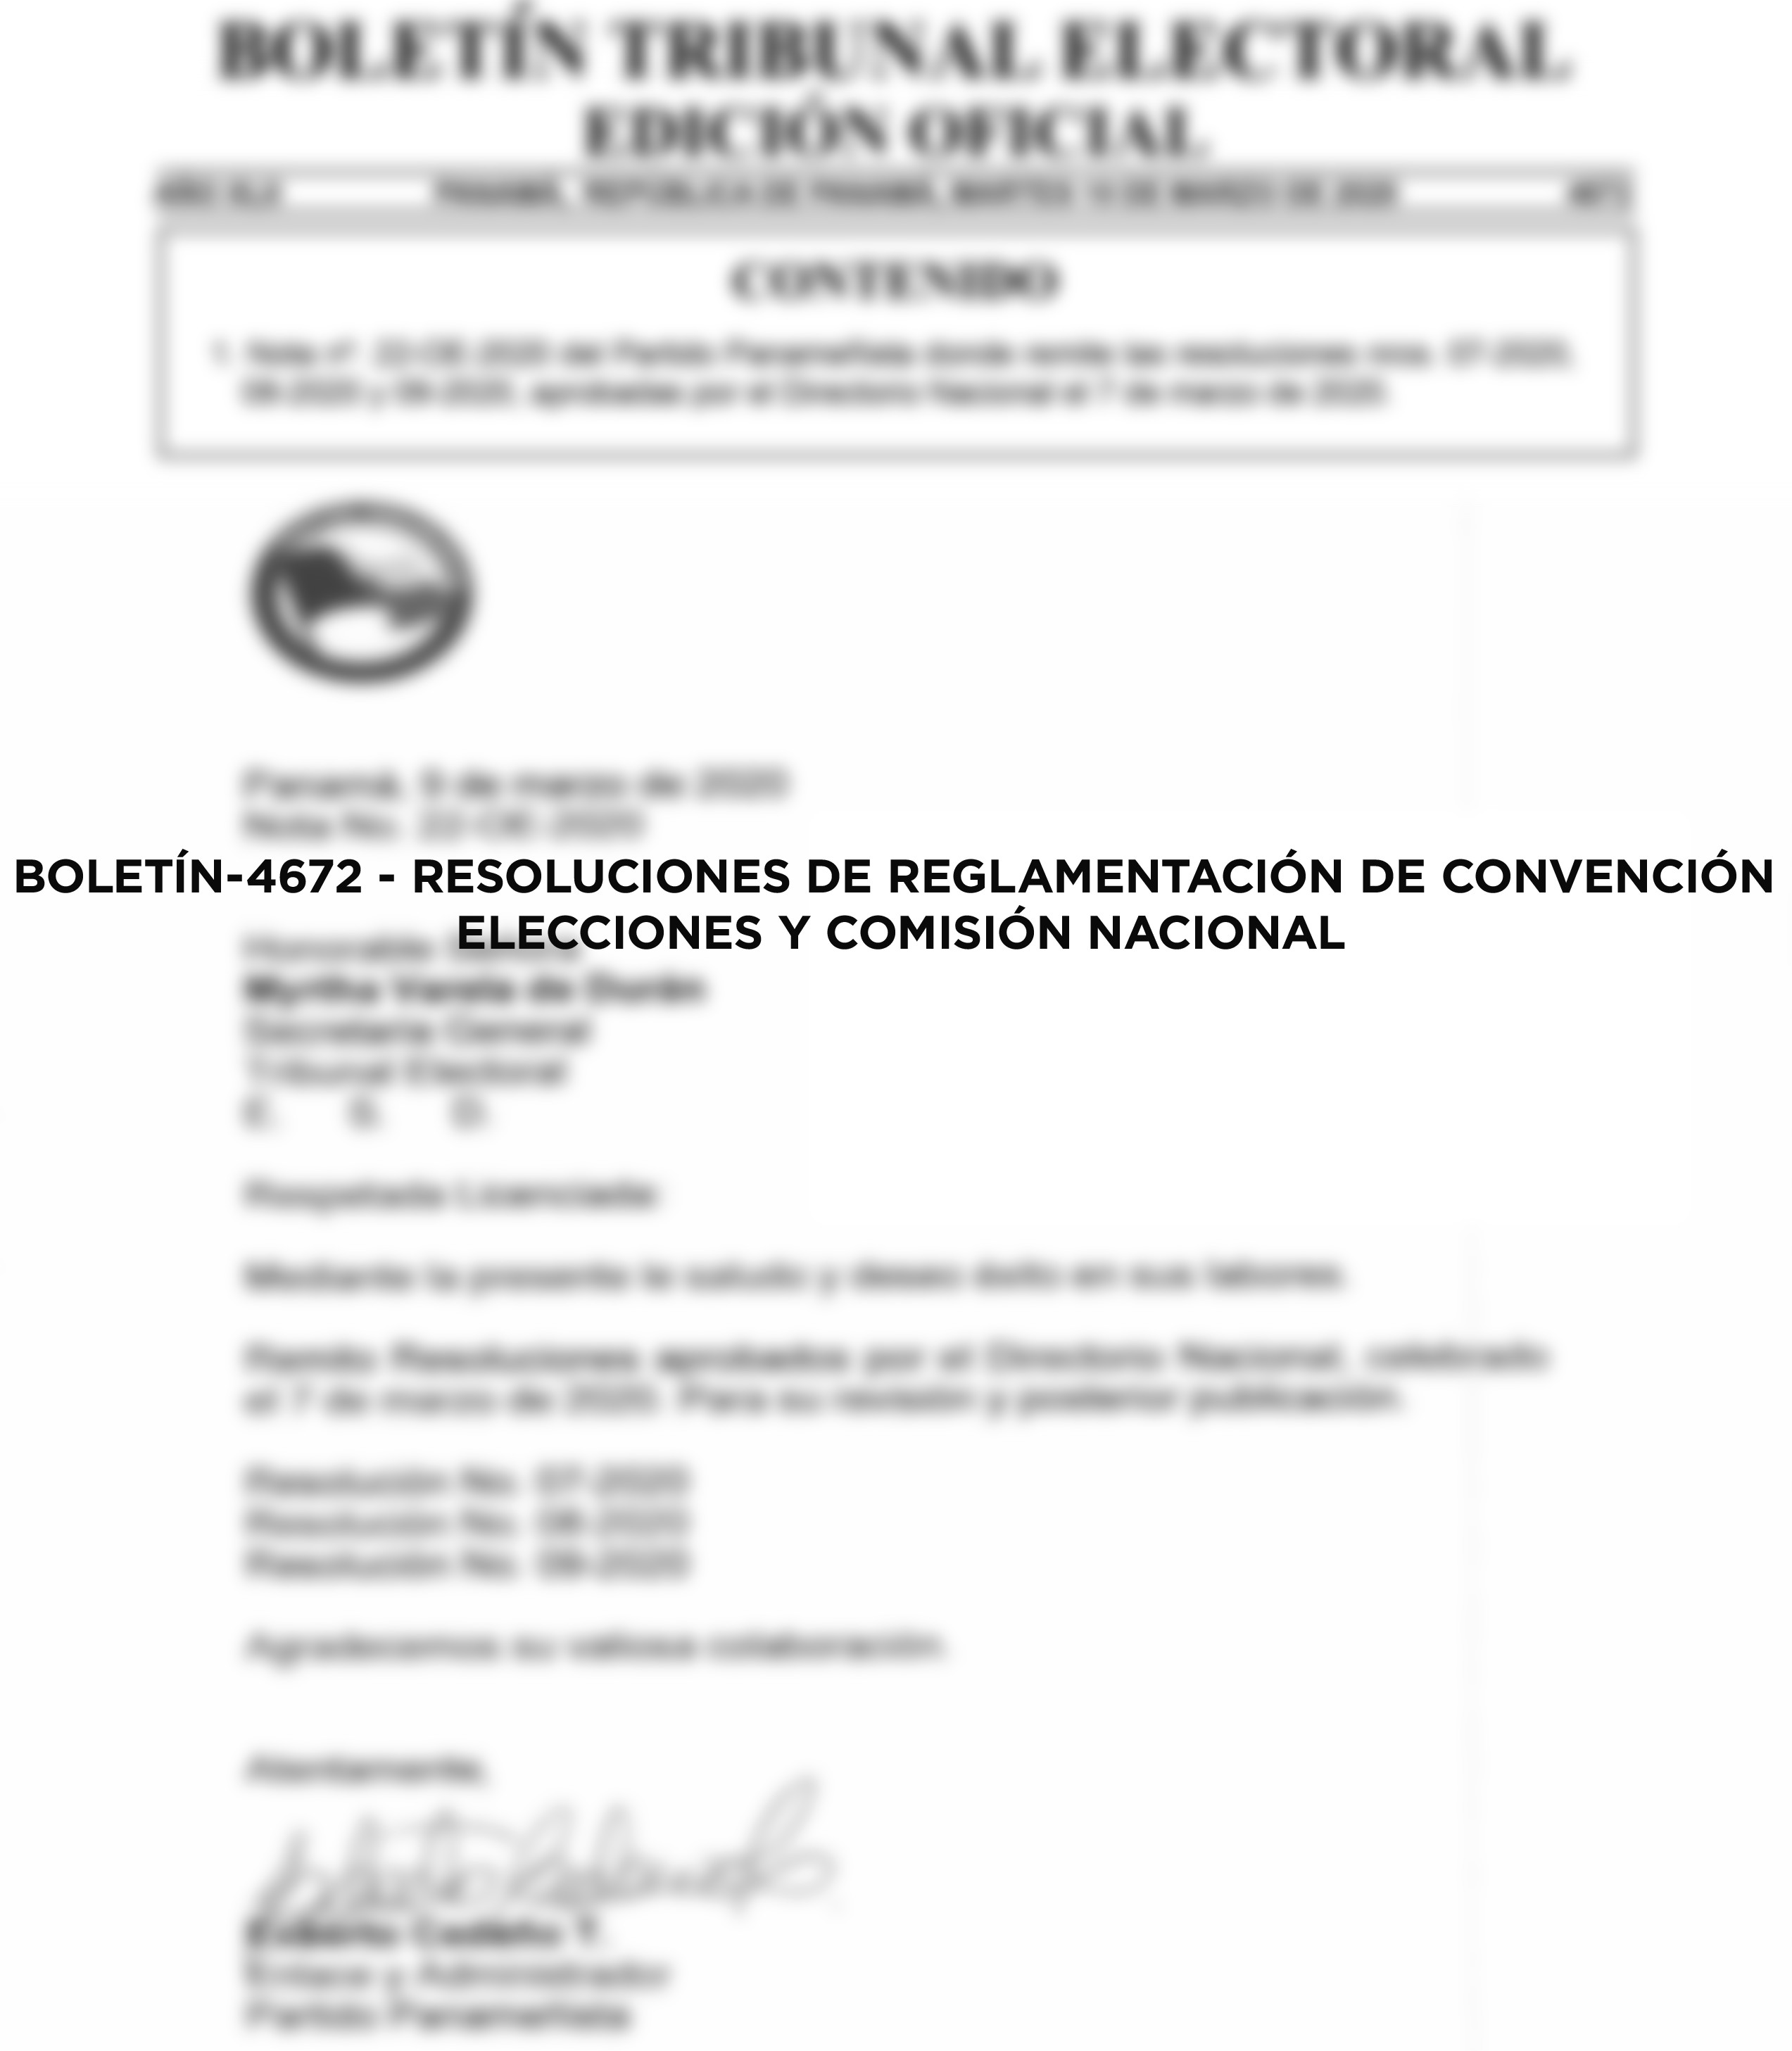 BOLETIN-4672_-_RESOLUCIONES_DE_REGLAMENT